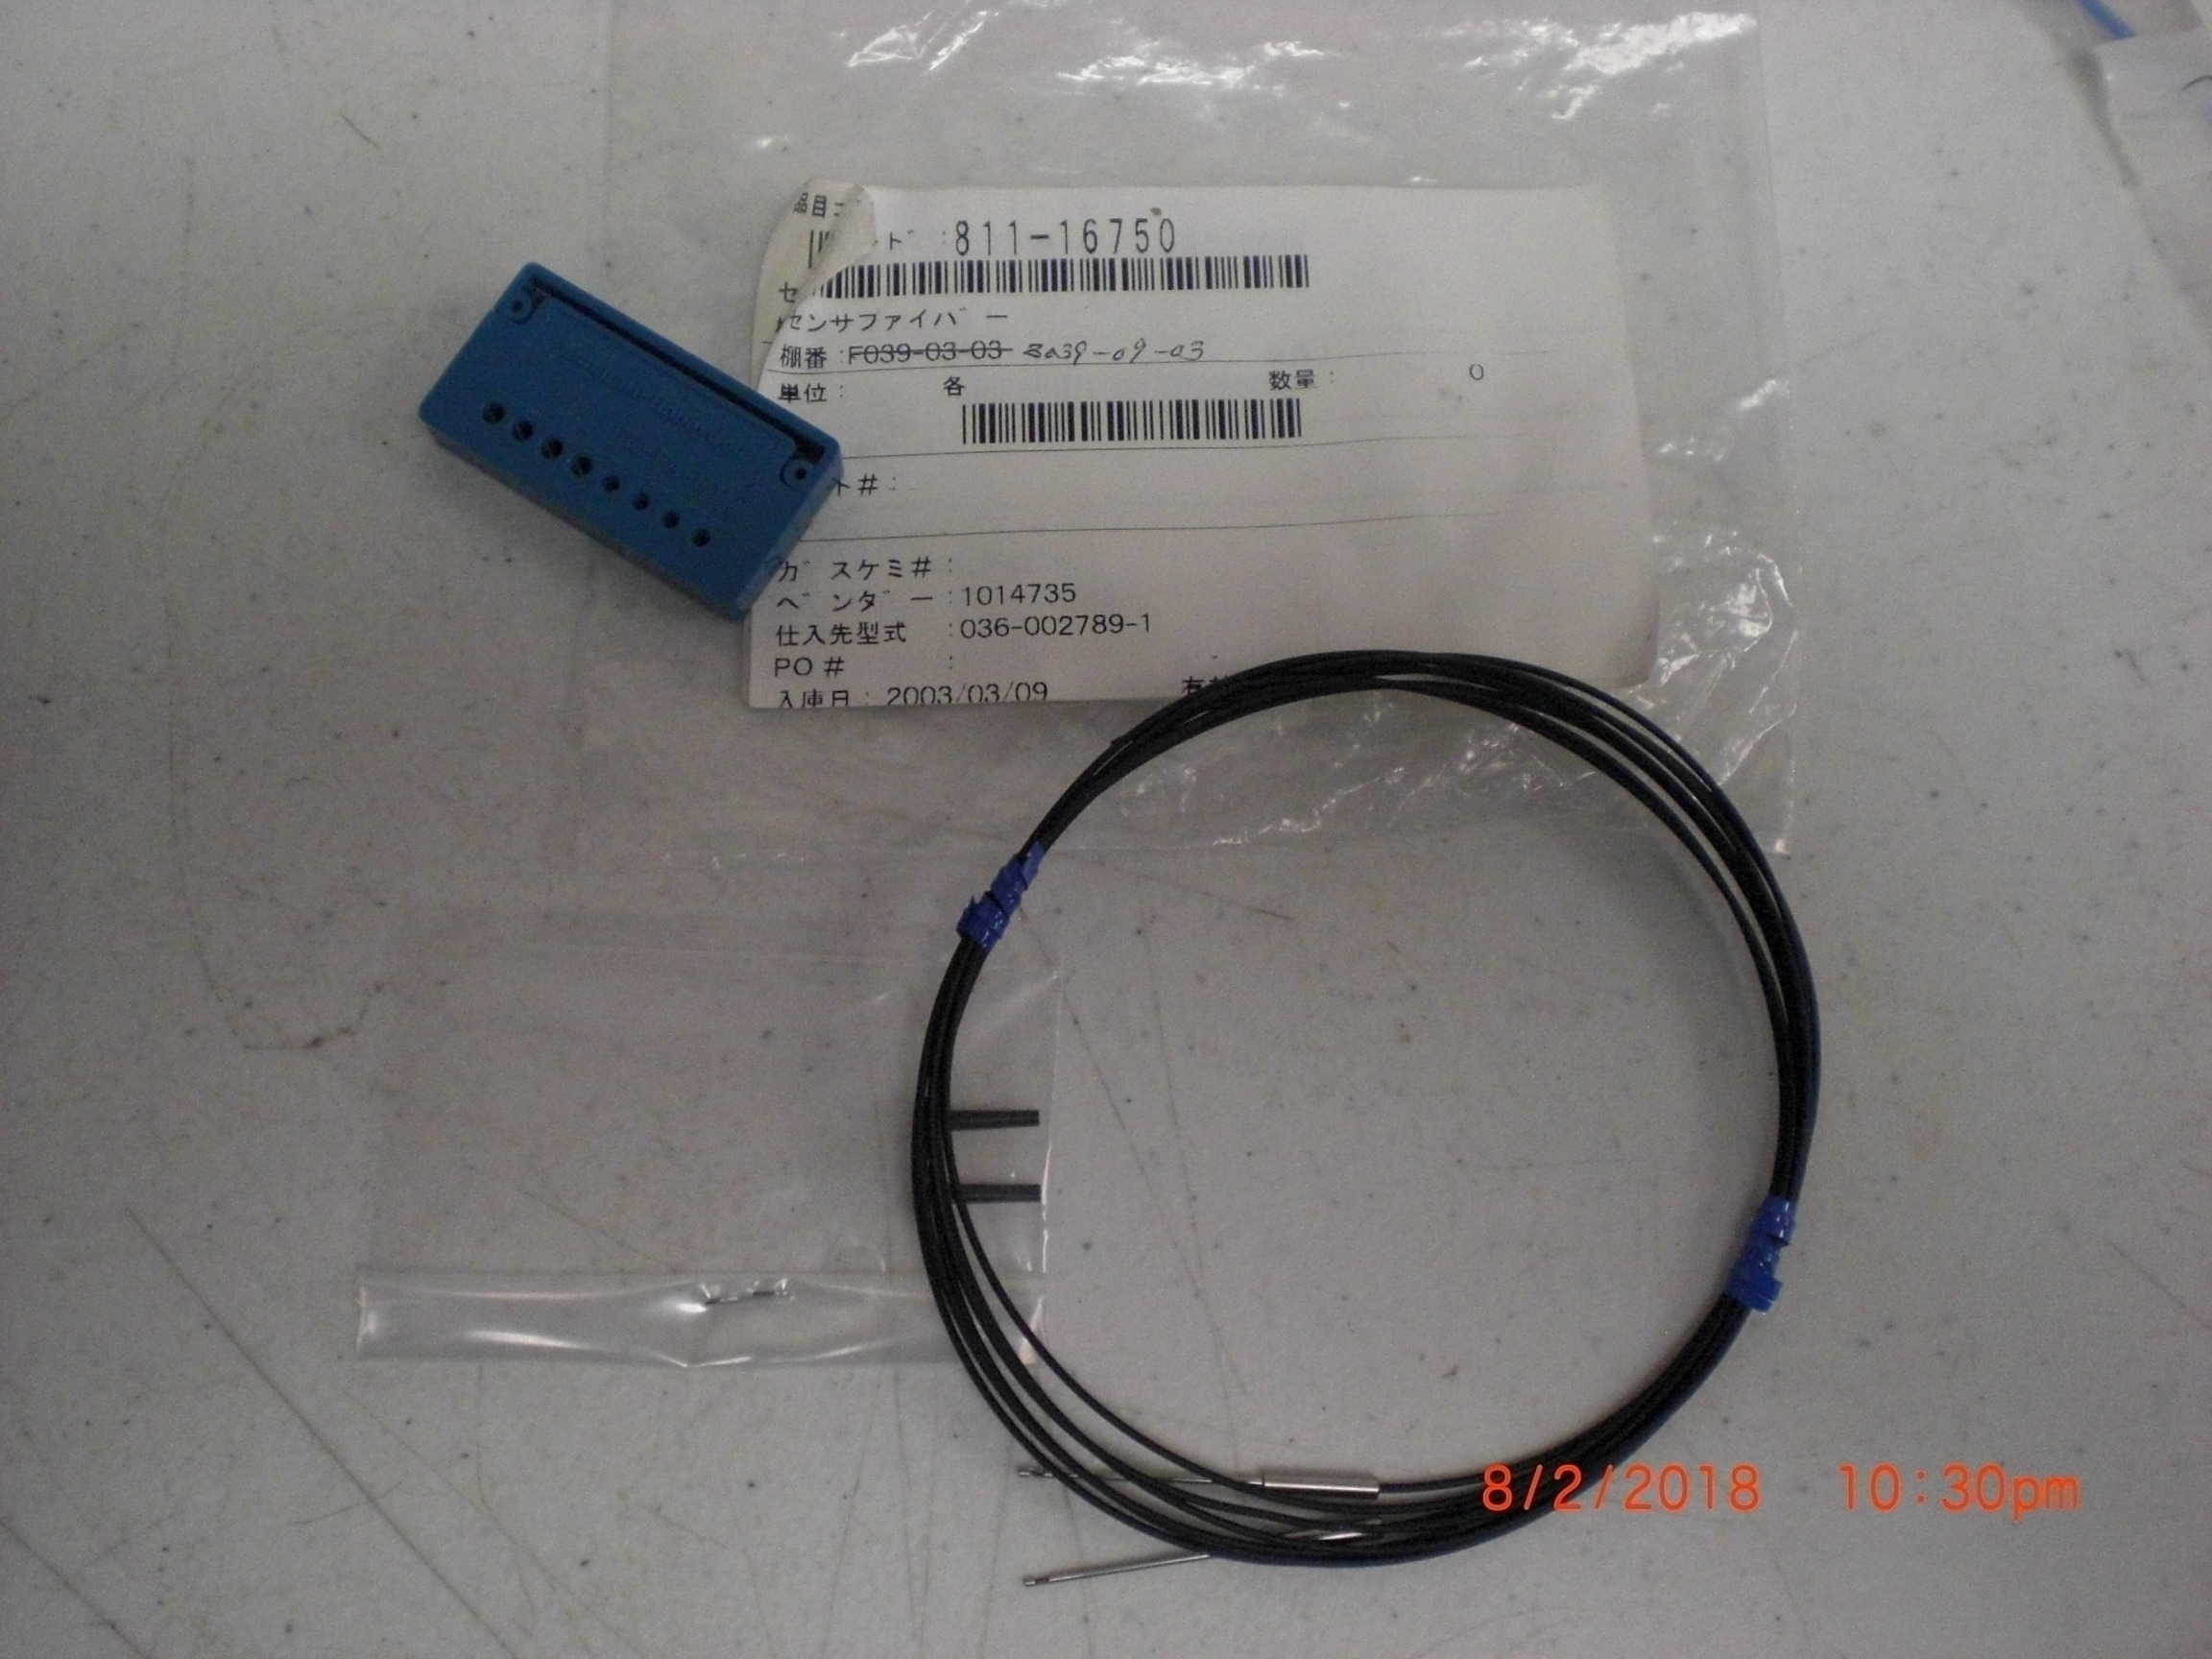 Fiber Optics YAMATAKE-HONEYWELL 3039-09-03 Cable sensor head